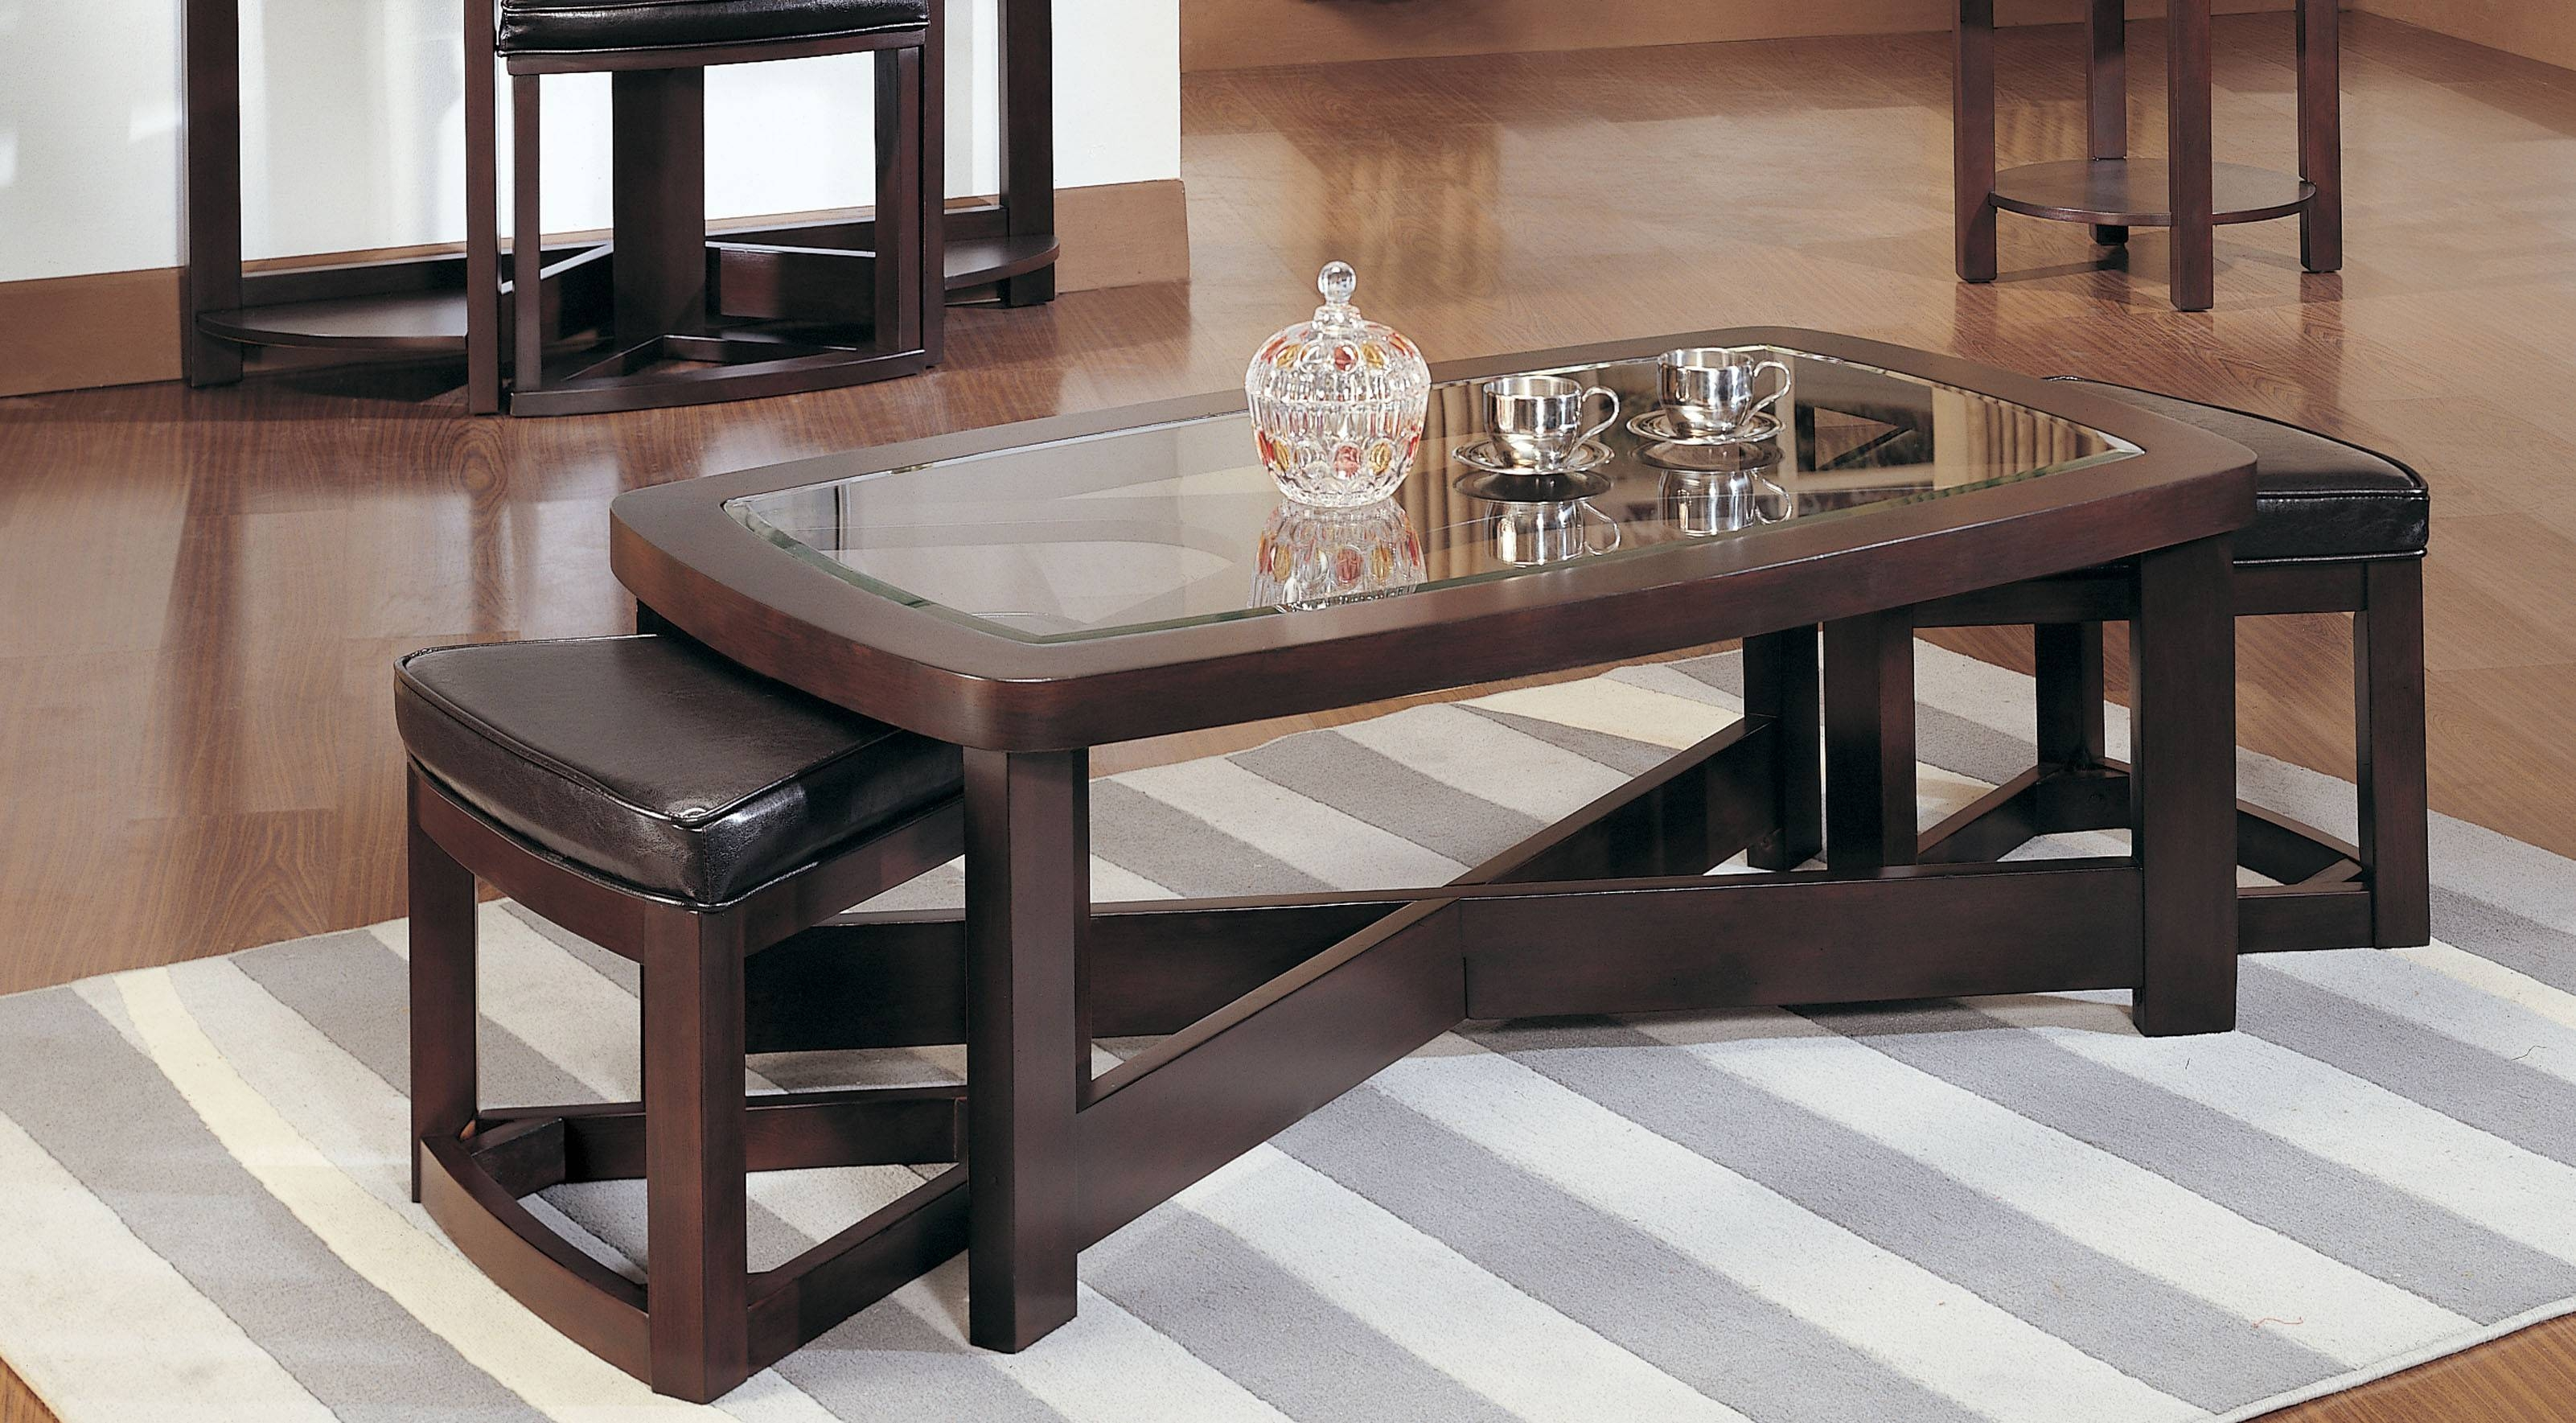 30 Best Ideas of Coffee Table With Chairs